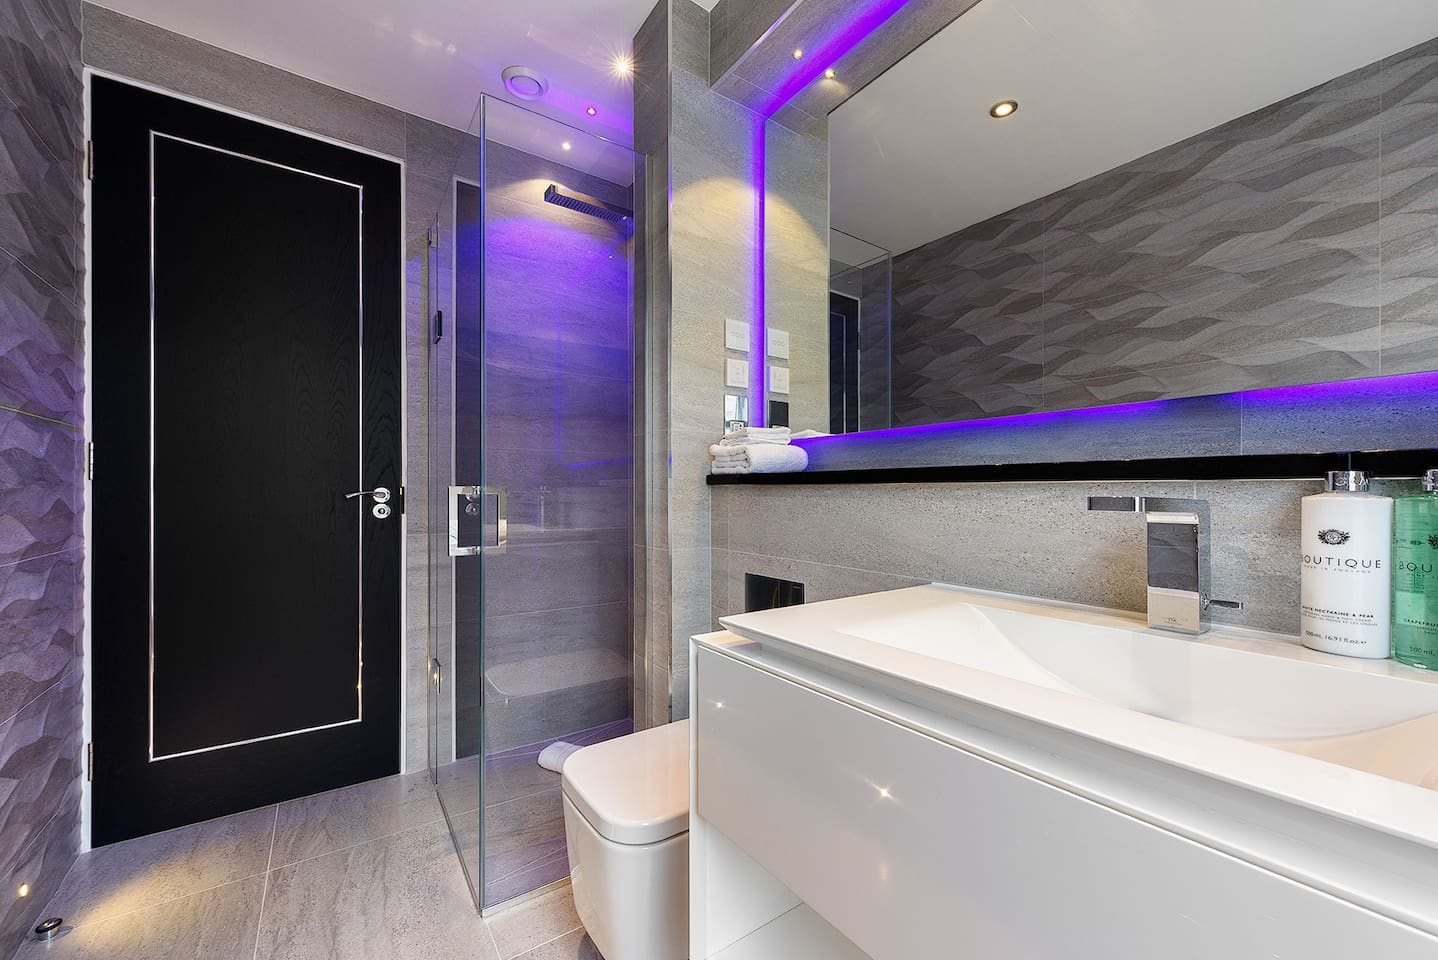 I have tried to make this Bathroom look great and function well. Underfloor heating, walk in shower, heated towel rail.